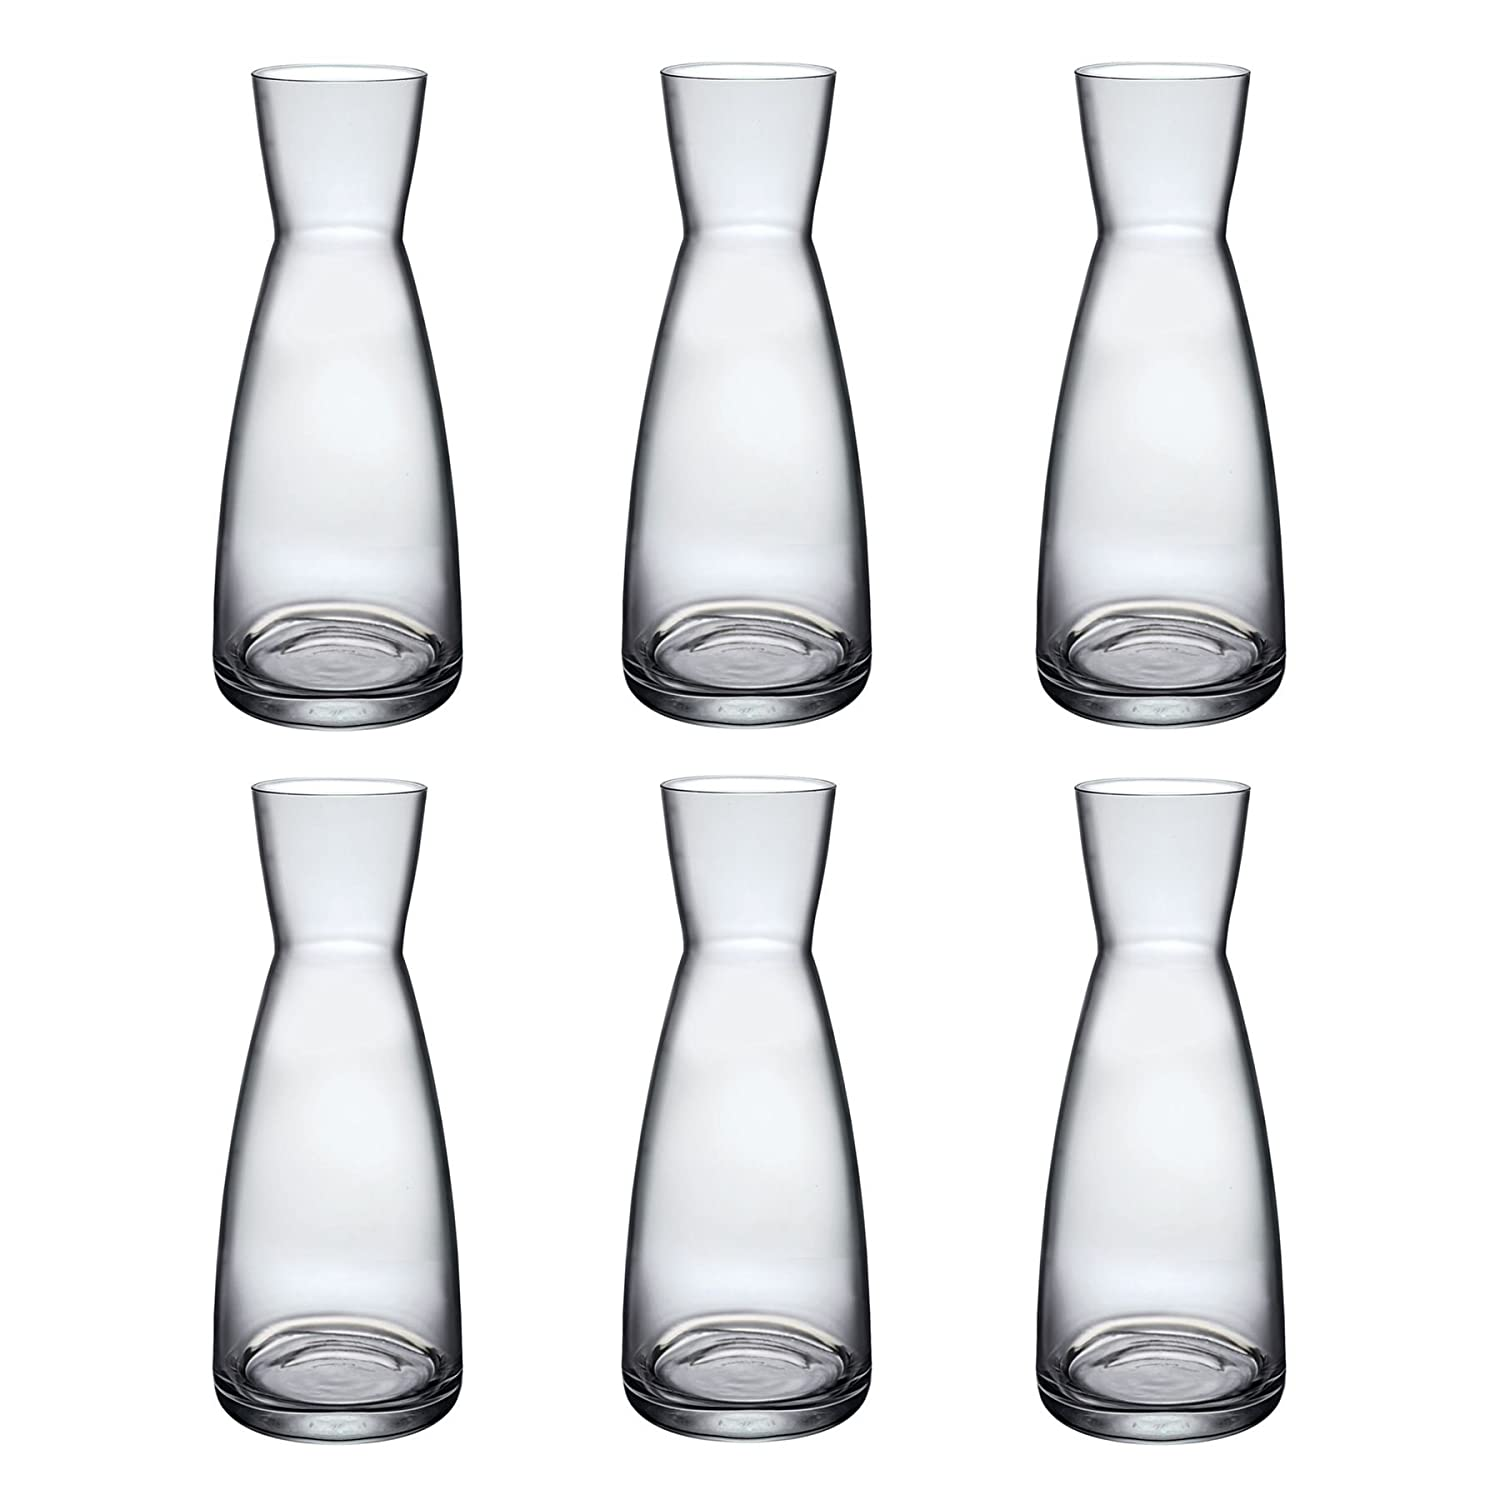 Bormioli Rocco Ypsilon Water Jug Carafe Decanter 285ml - Pack of 6